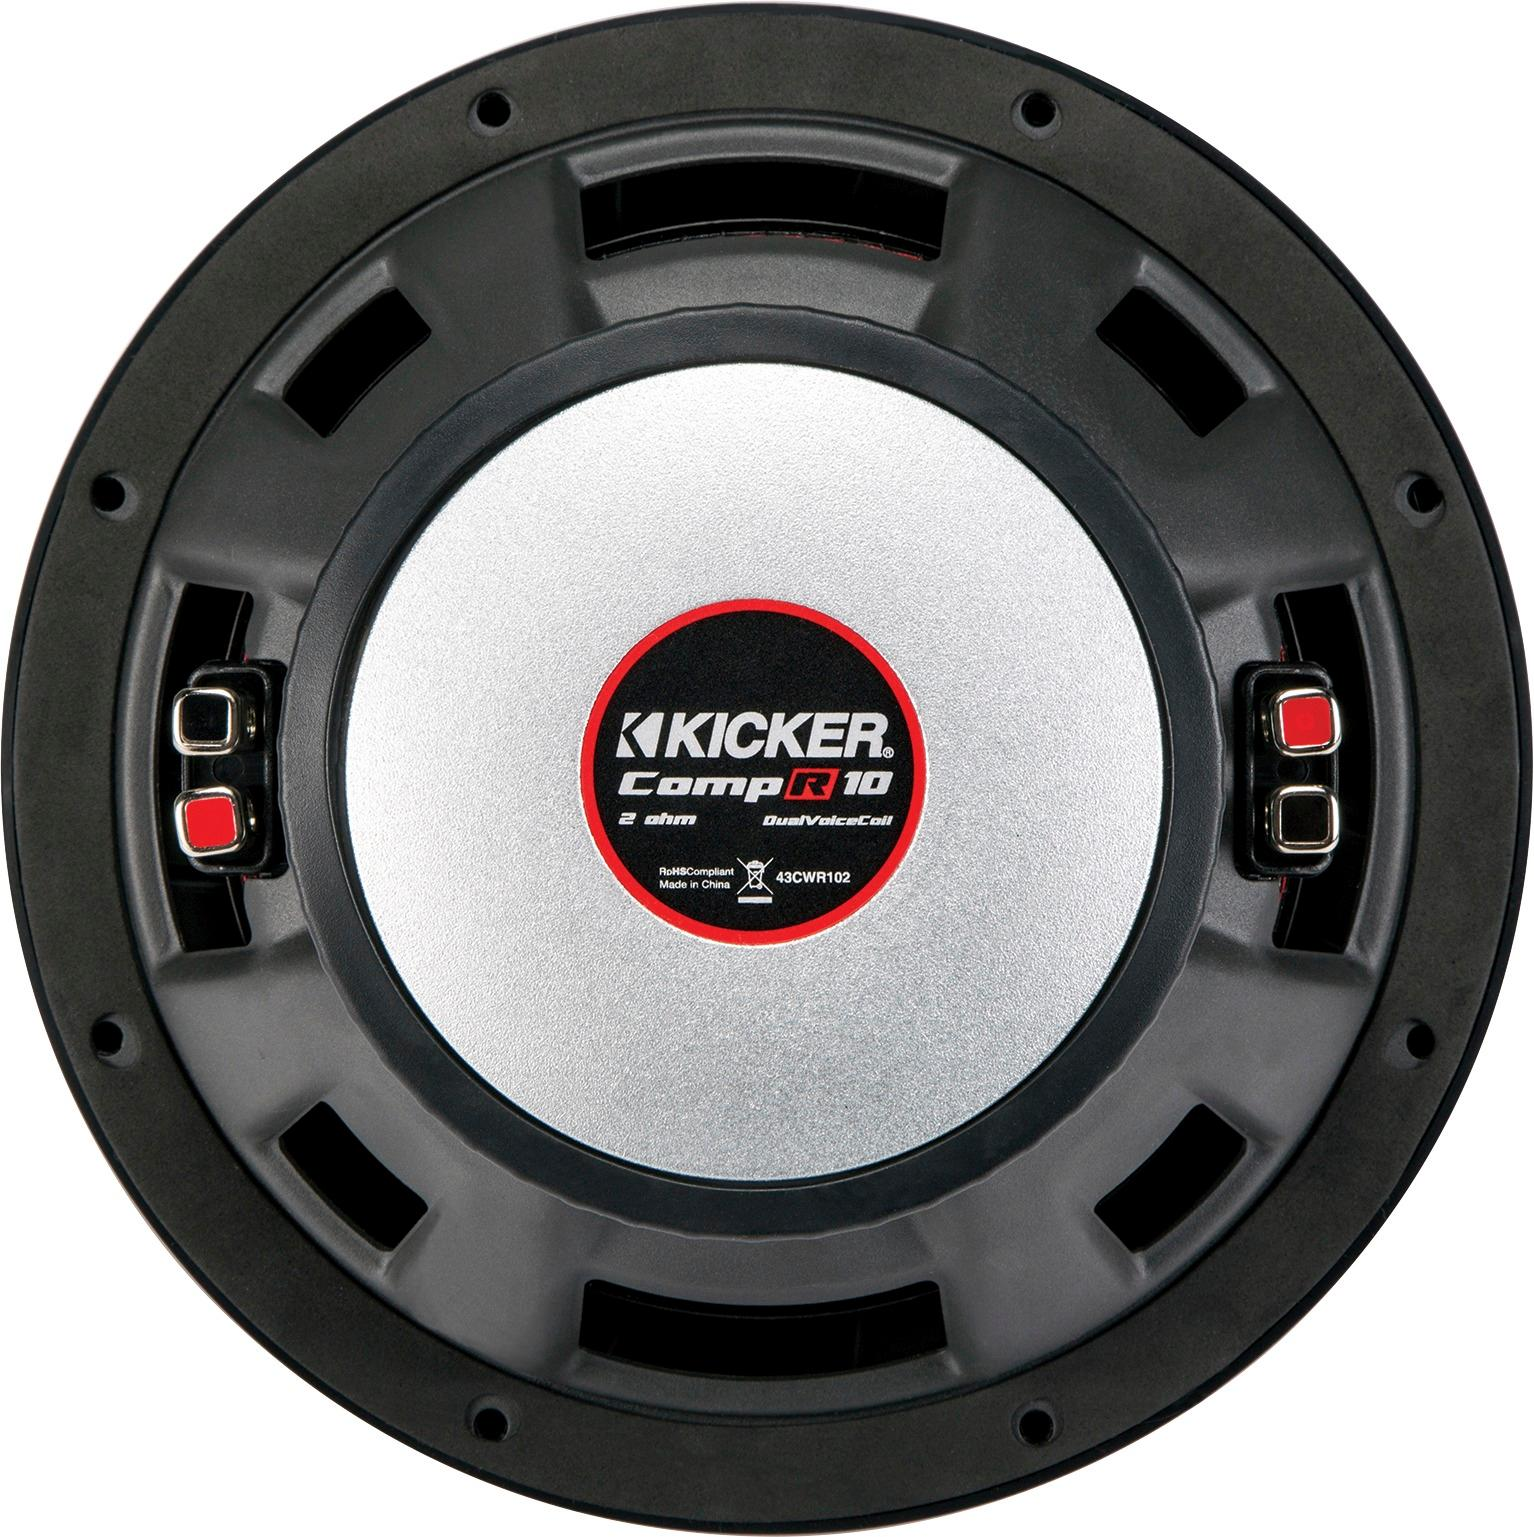 hight resolution of kicker compr 10 dual voice coil 2 ohm subwoofer black 43cwr102 best buy